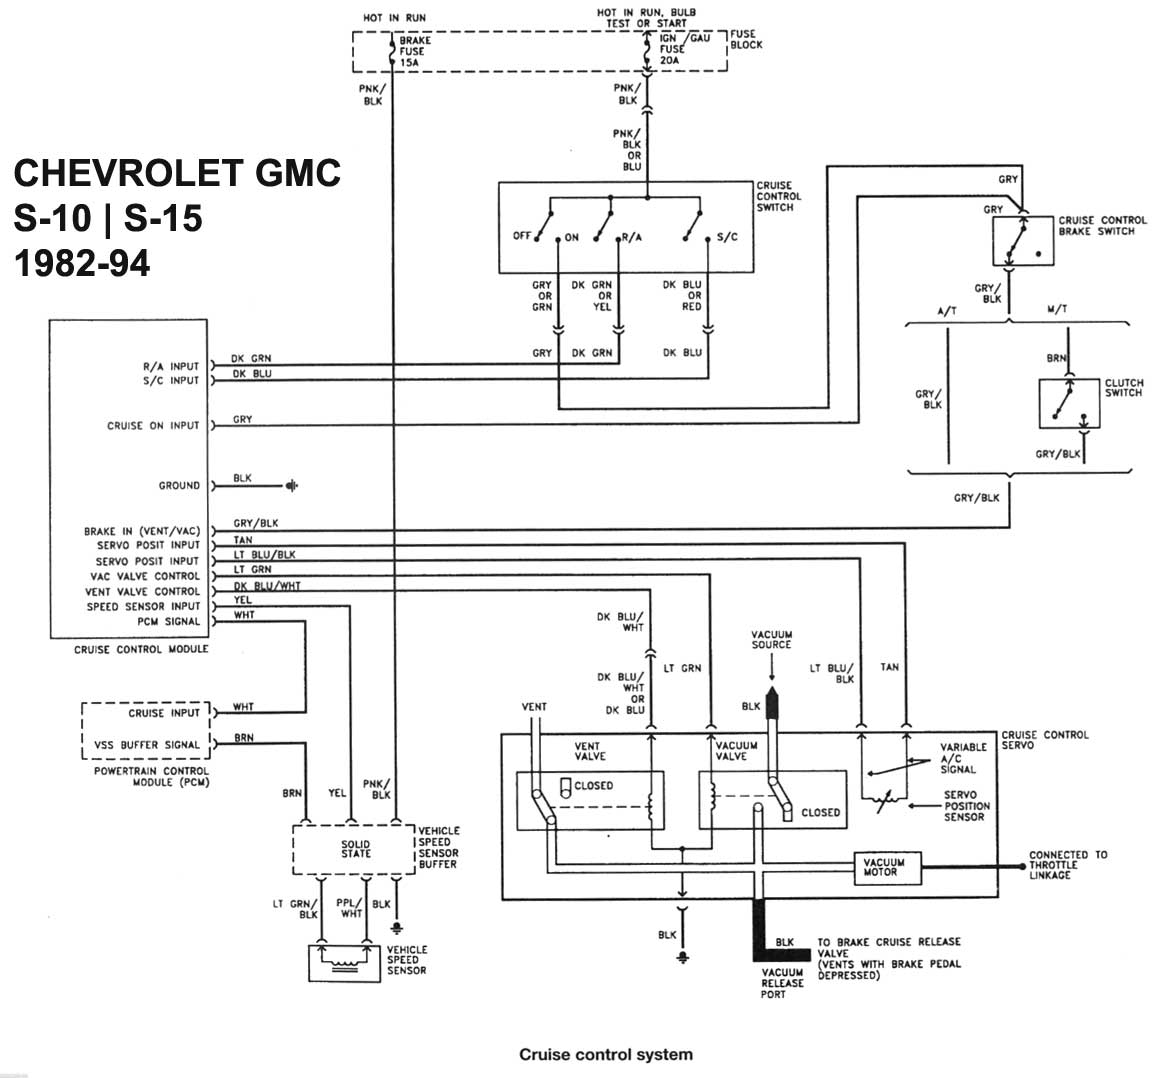 Opel Monza Wiring Diagram Page 5 And Schematics Blazer Calibra Block Schematic Diagrams Source Diagramas Chevrolet Gmc Ascona Manta